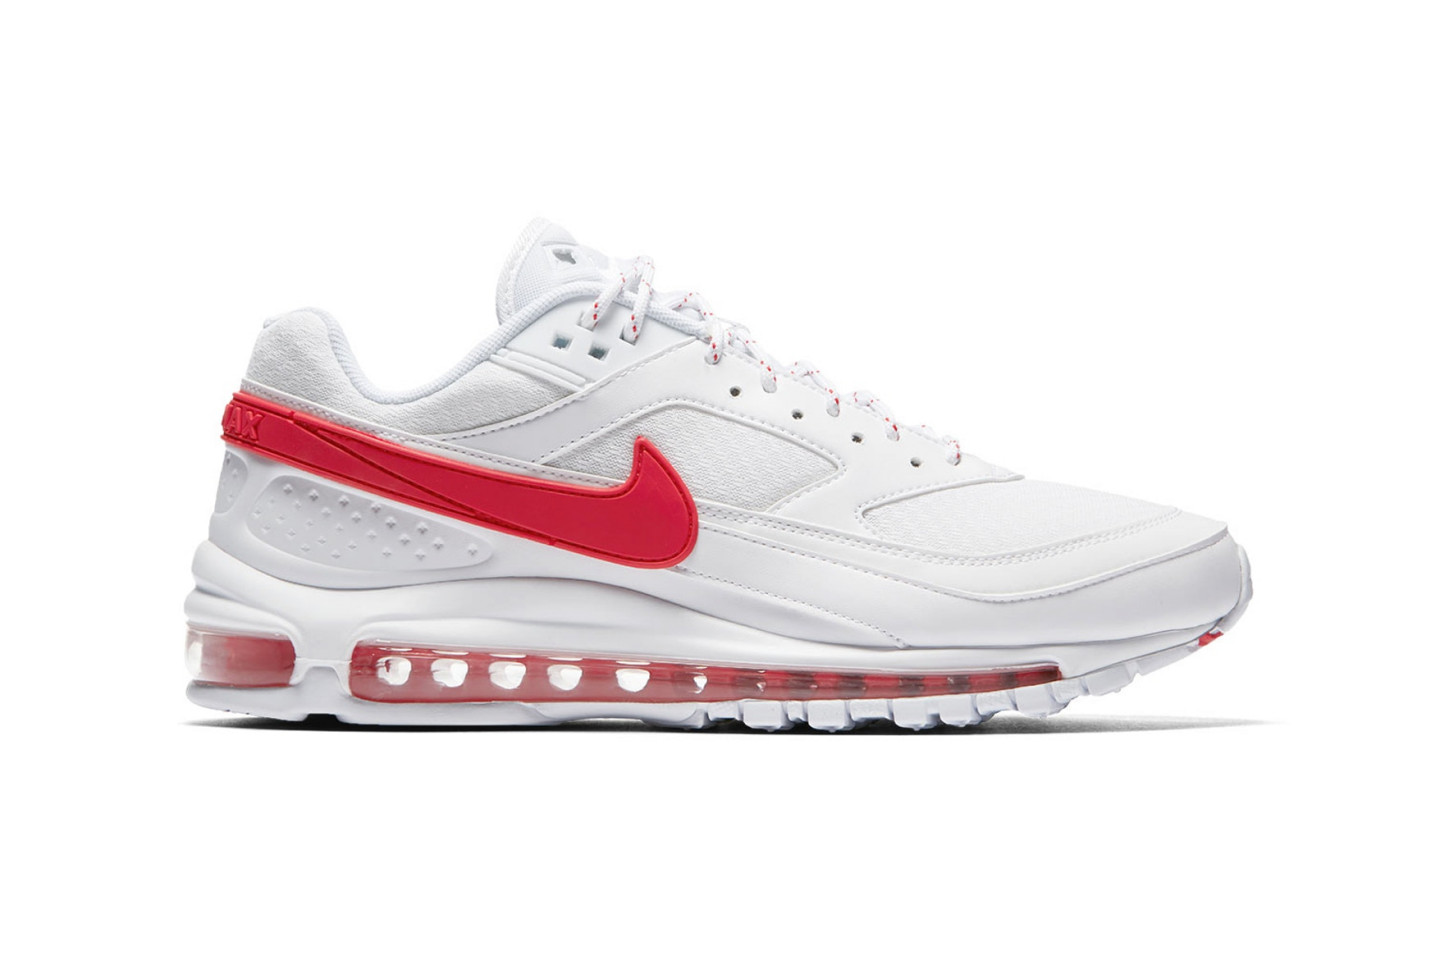 Here's How You Can Cop the Skepta Air Max 97BW SK